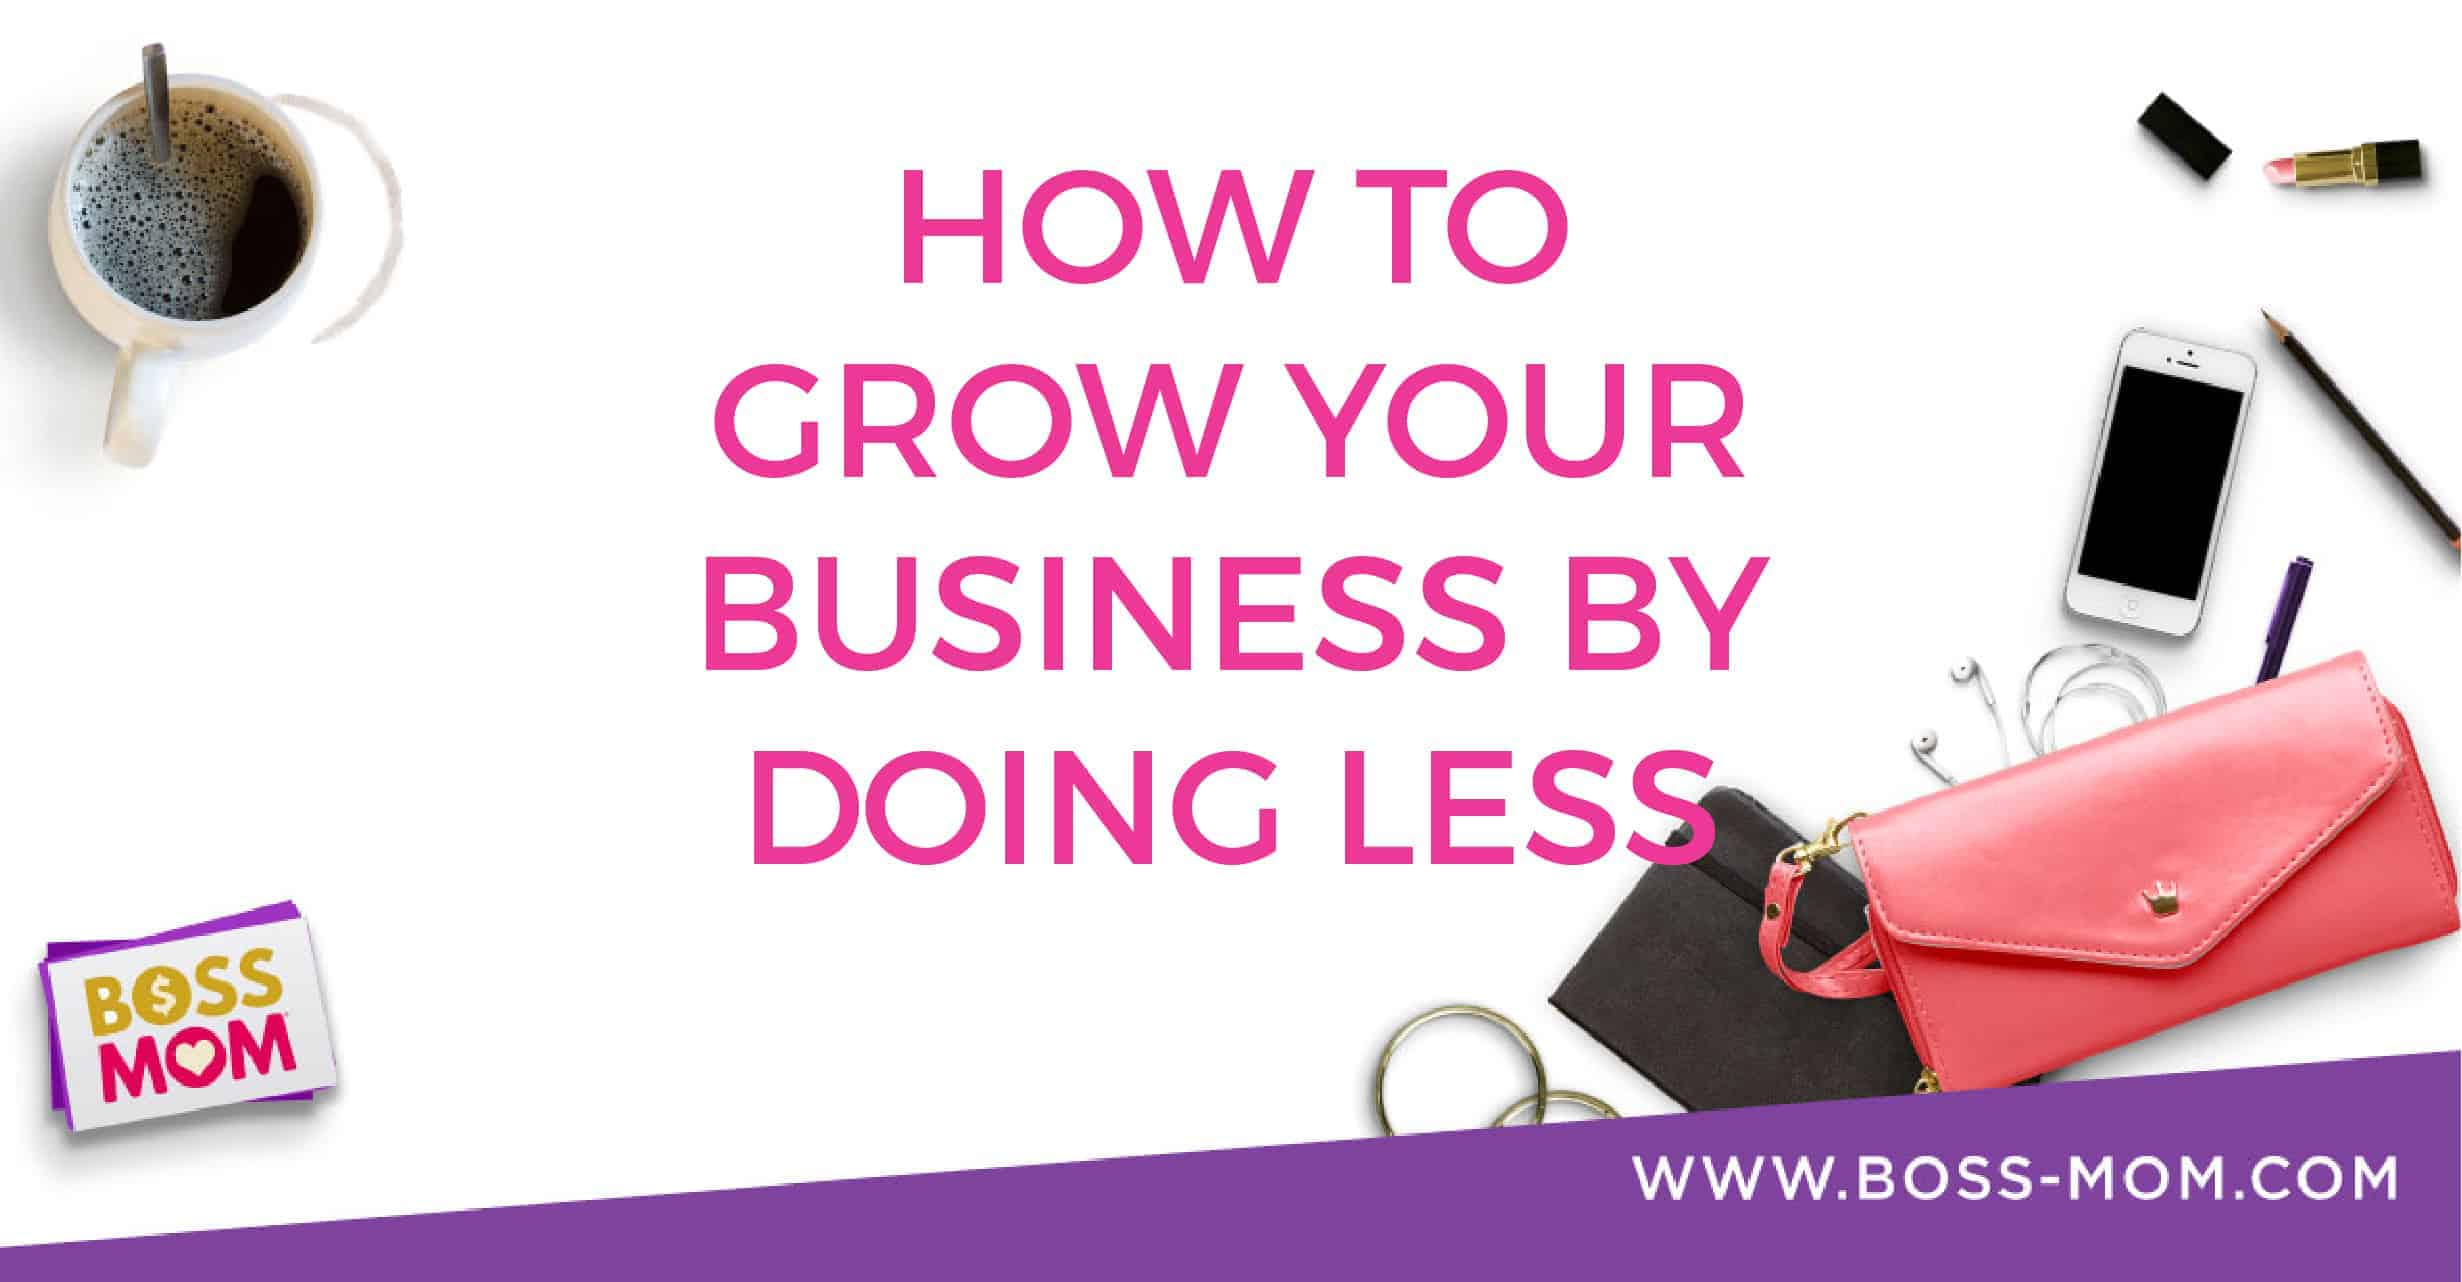 Episode 238: How to Grow Your Business By Doing Less with Dana Malstaff